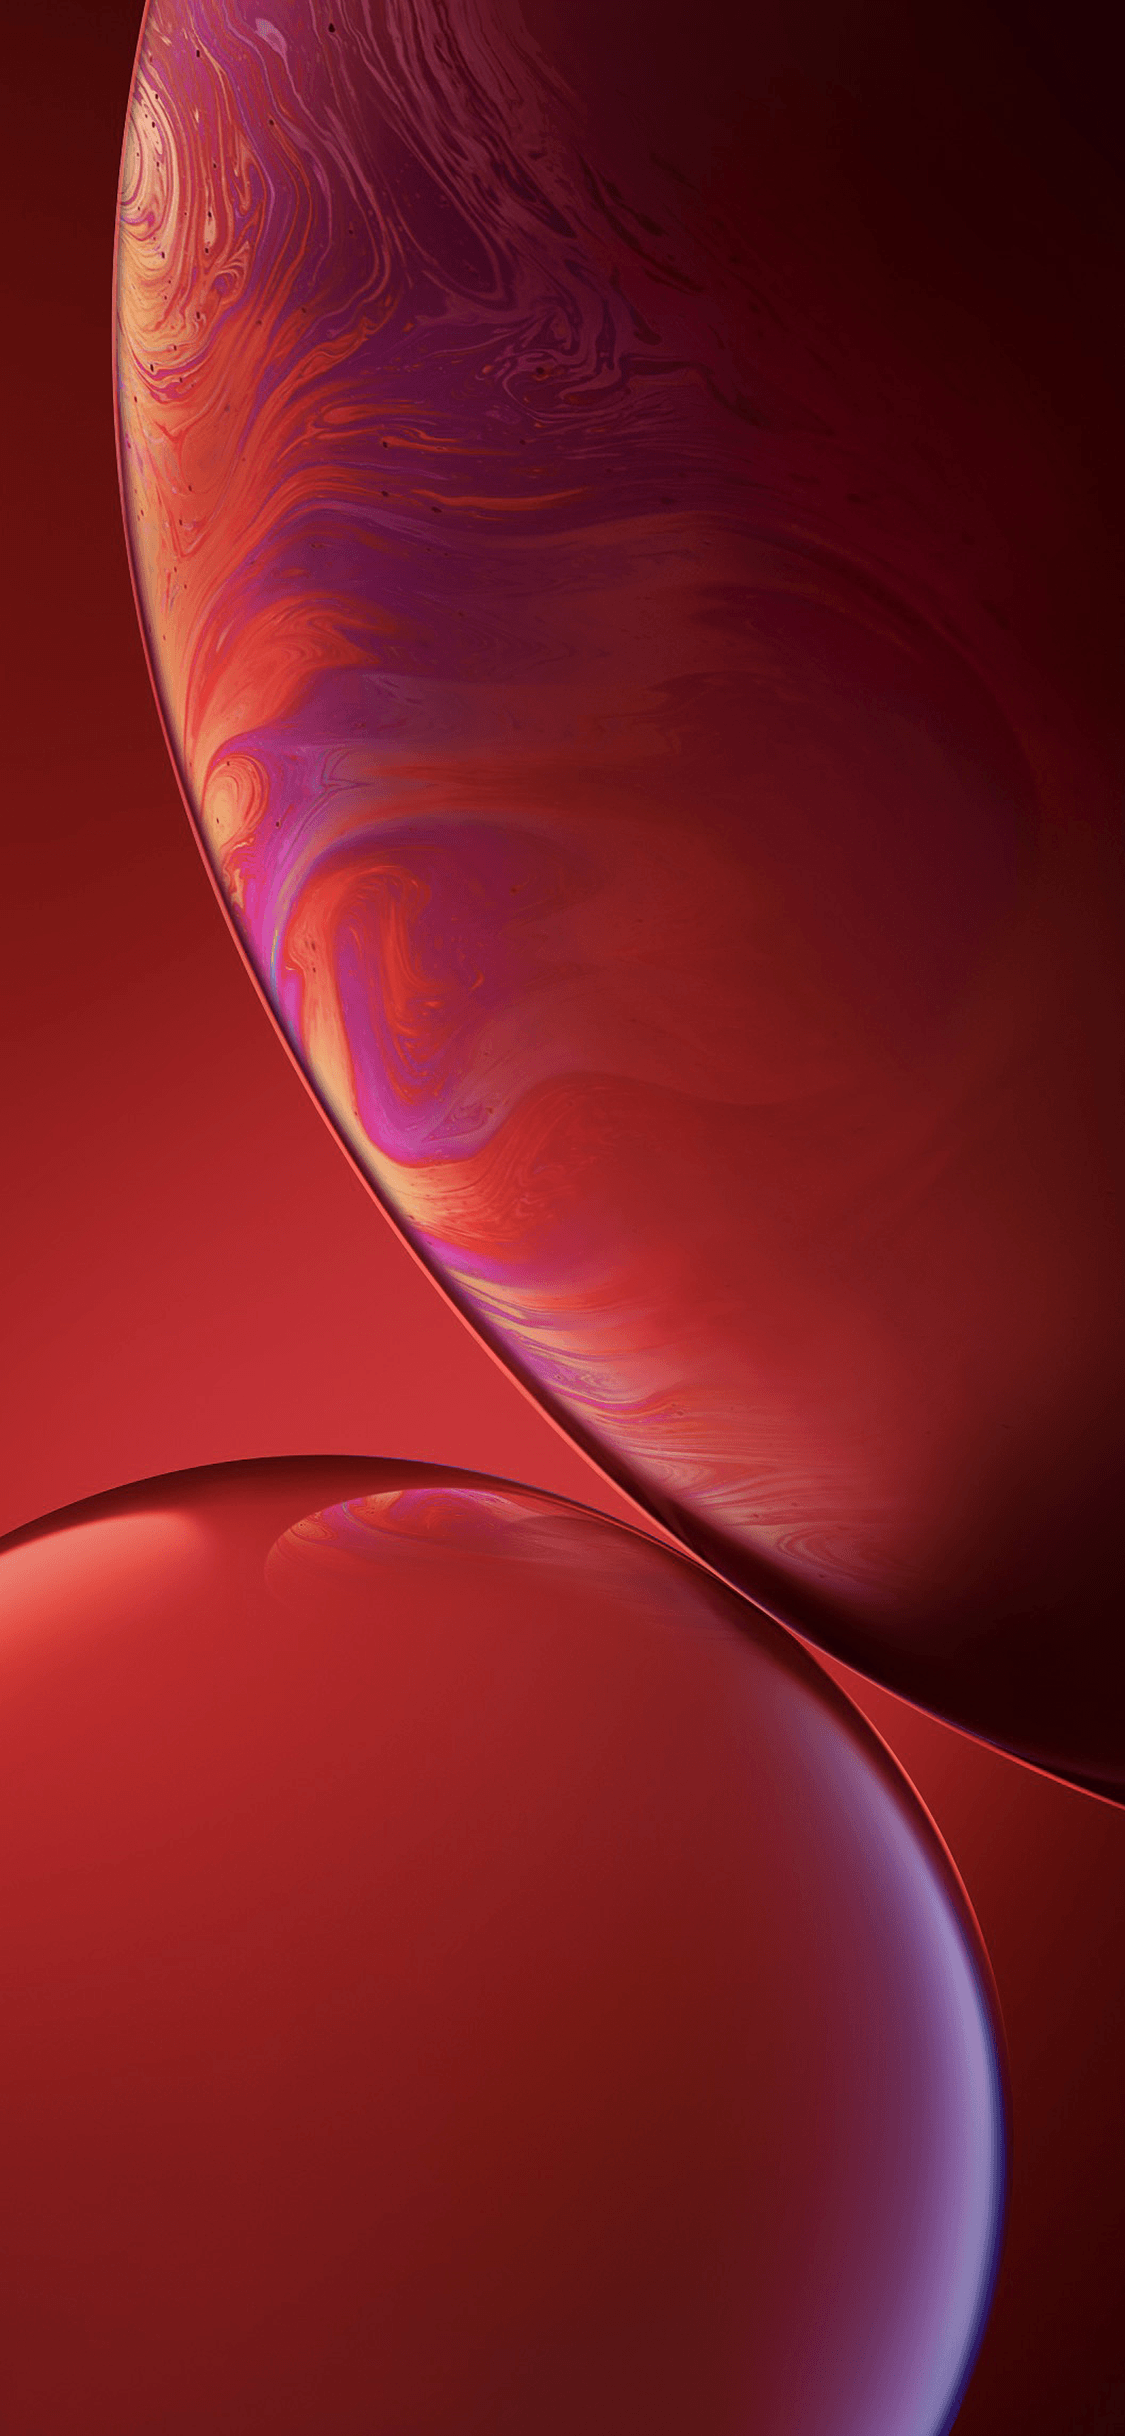 Cool Backgrounds Iphone Xr